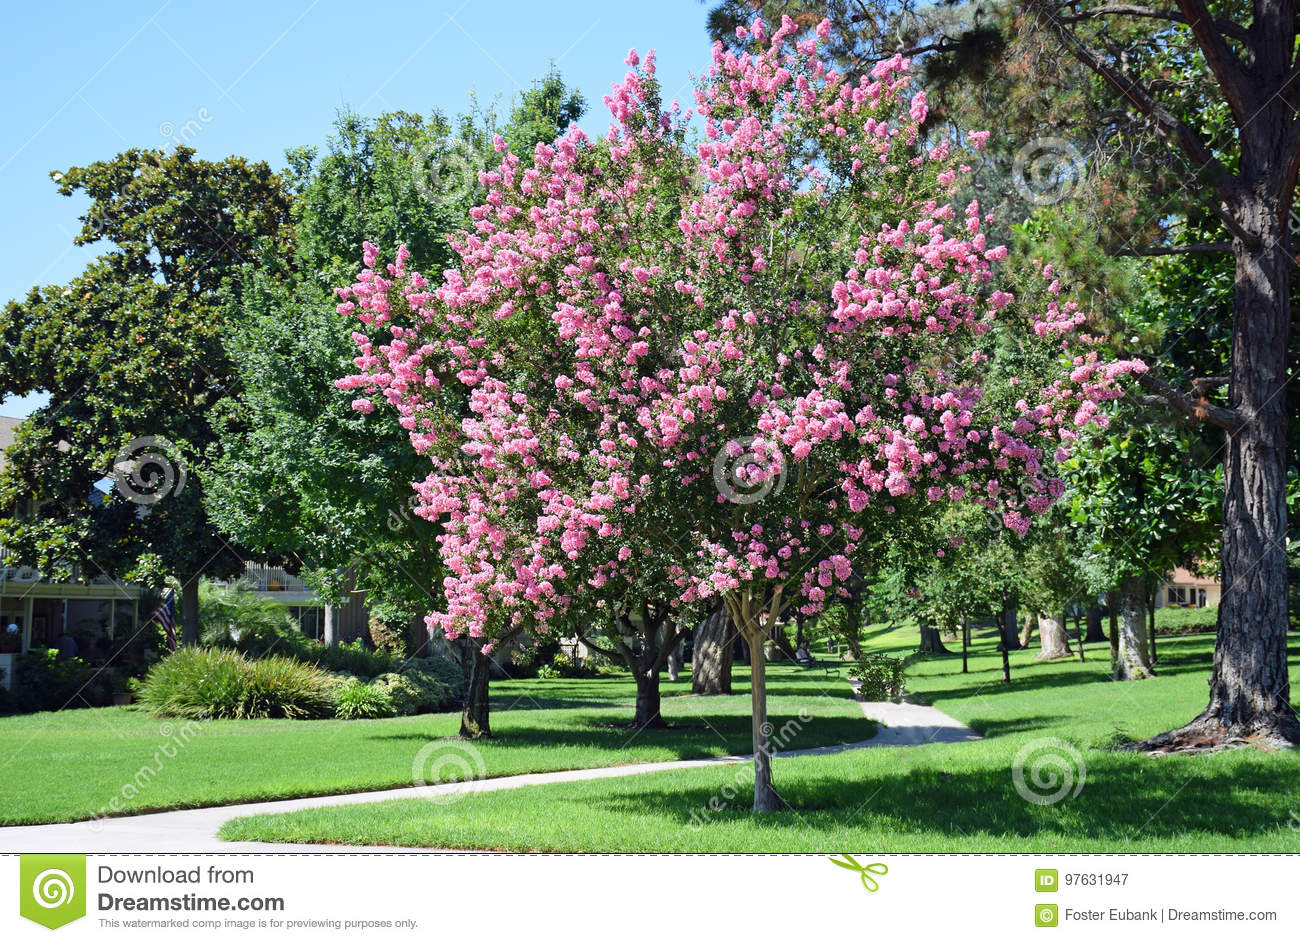 Lagerstroemia, commonly known as crape myrtle or crepe myrtle.